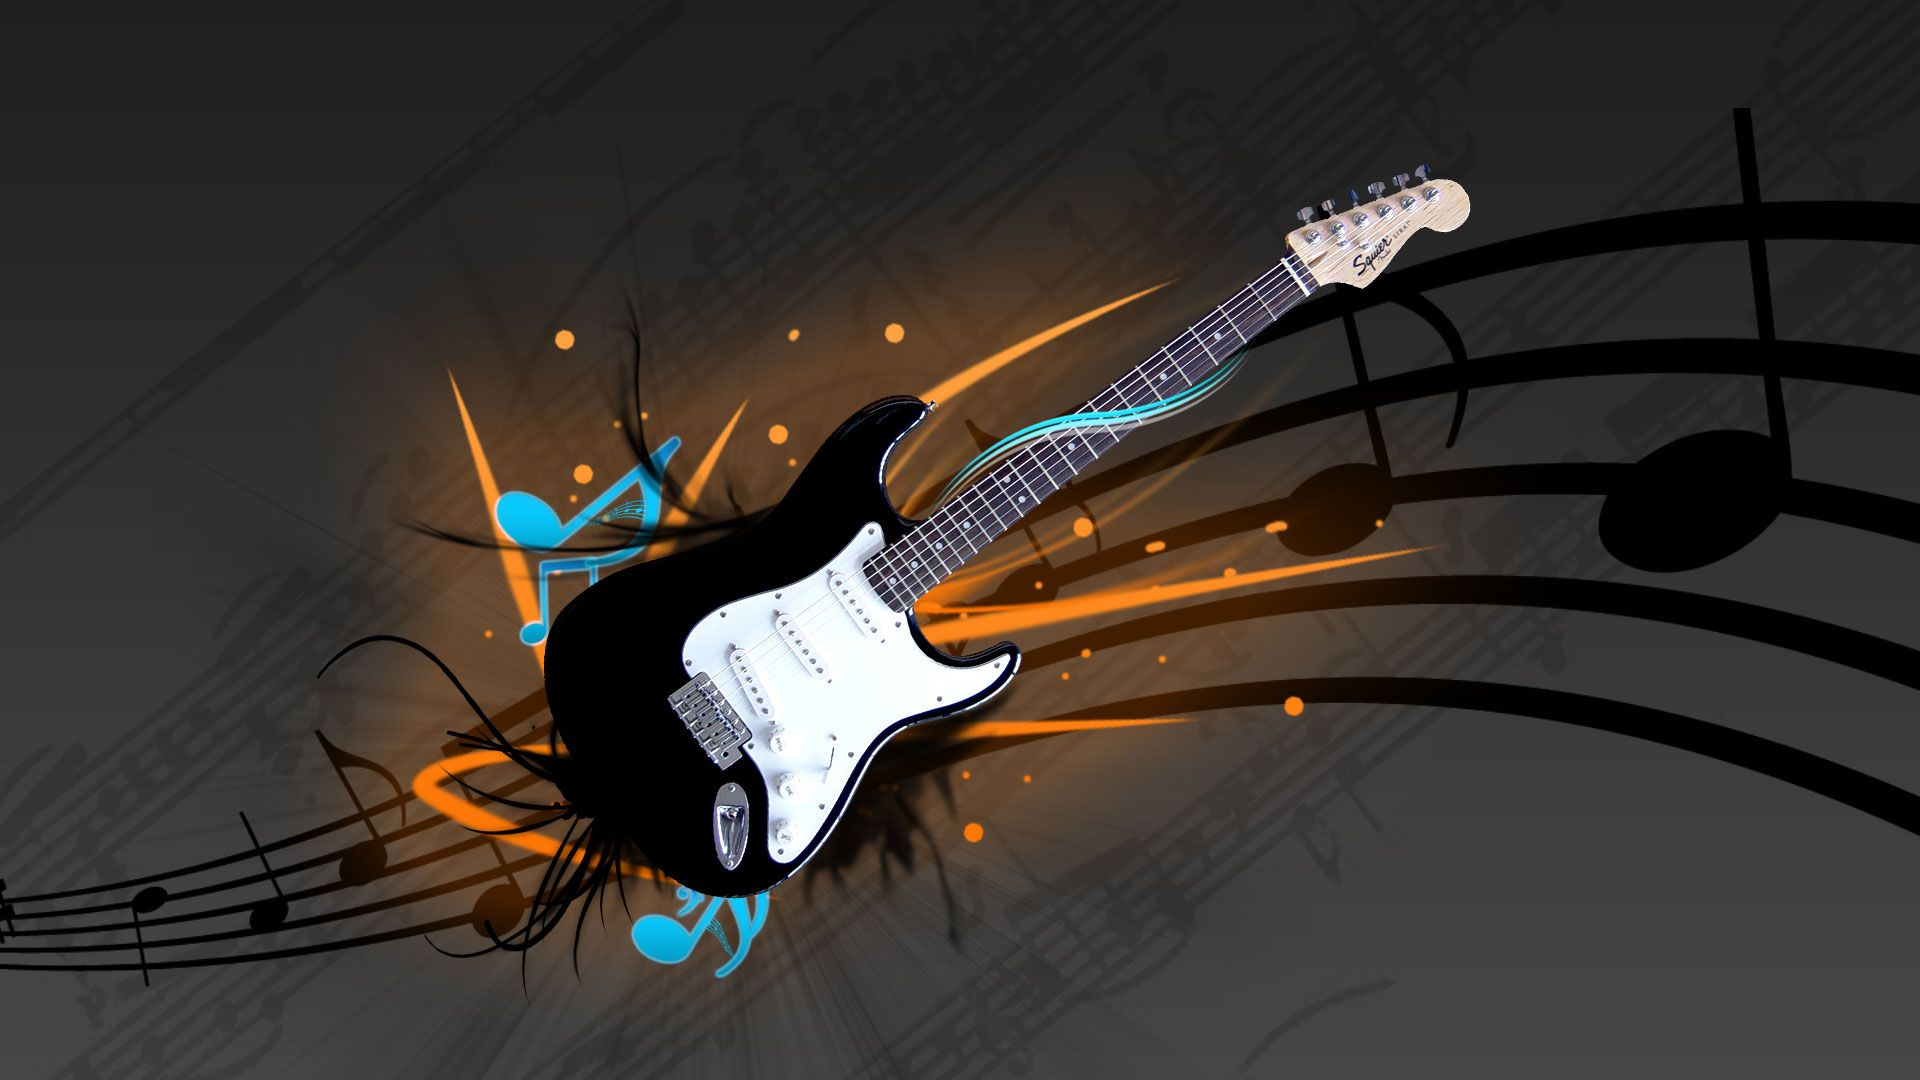 Awesome Examples Of Guitar Wallpaper For Free Naldz Graphics 1920x1080 Cool Guitar Backgrounds 50 Wallpapers Adorable Wallpapers